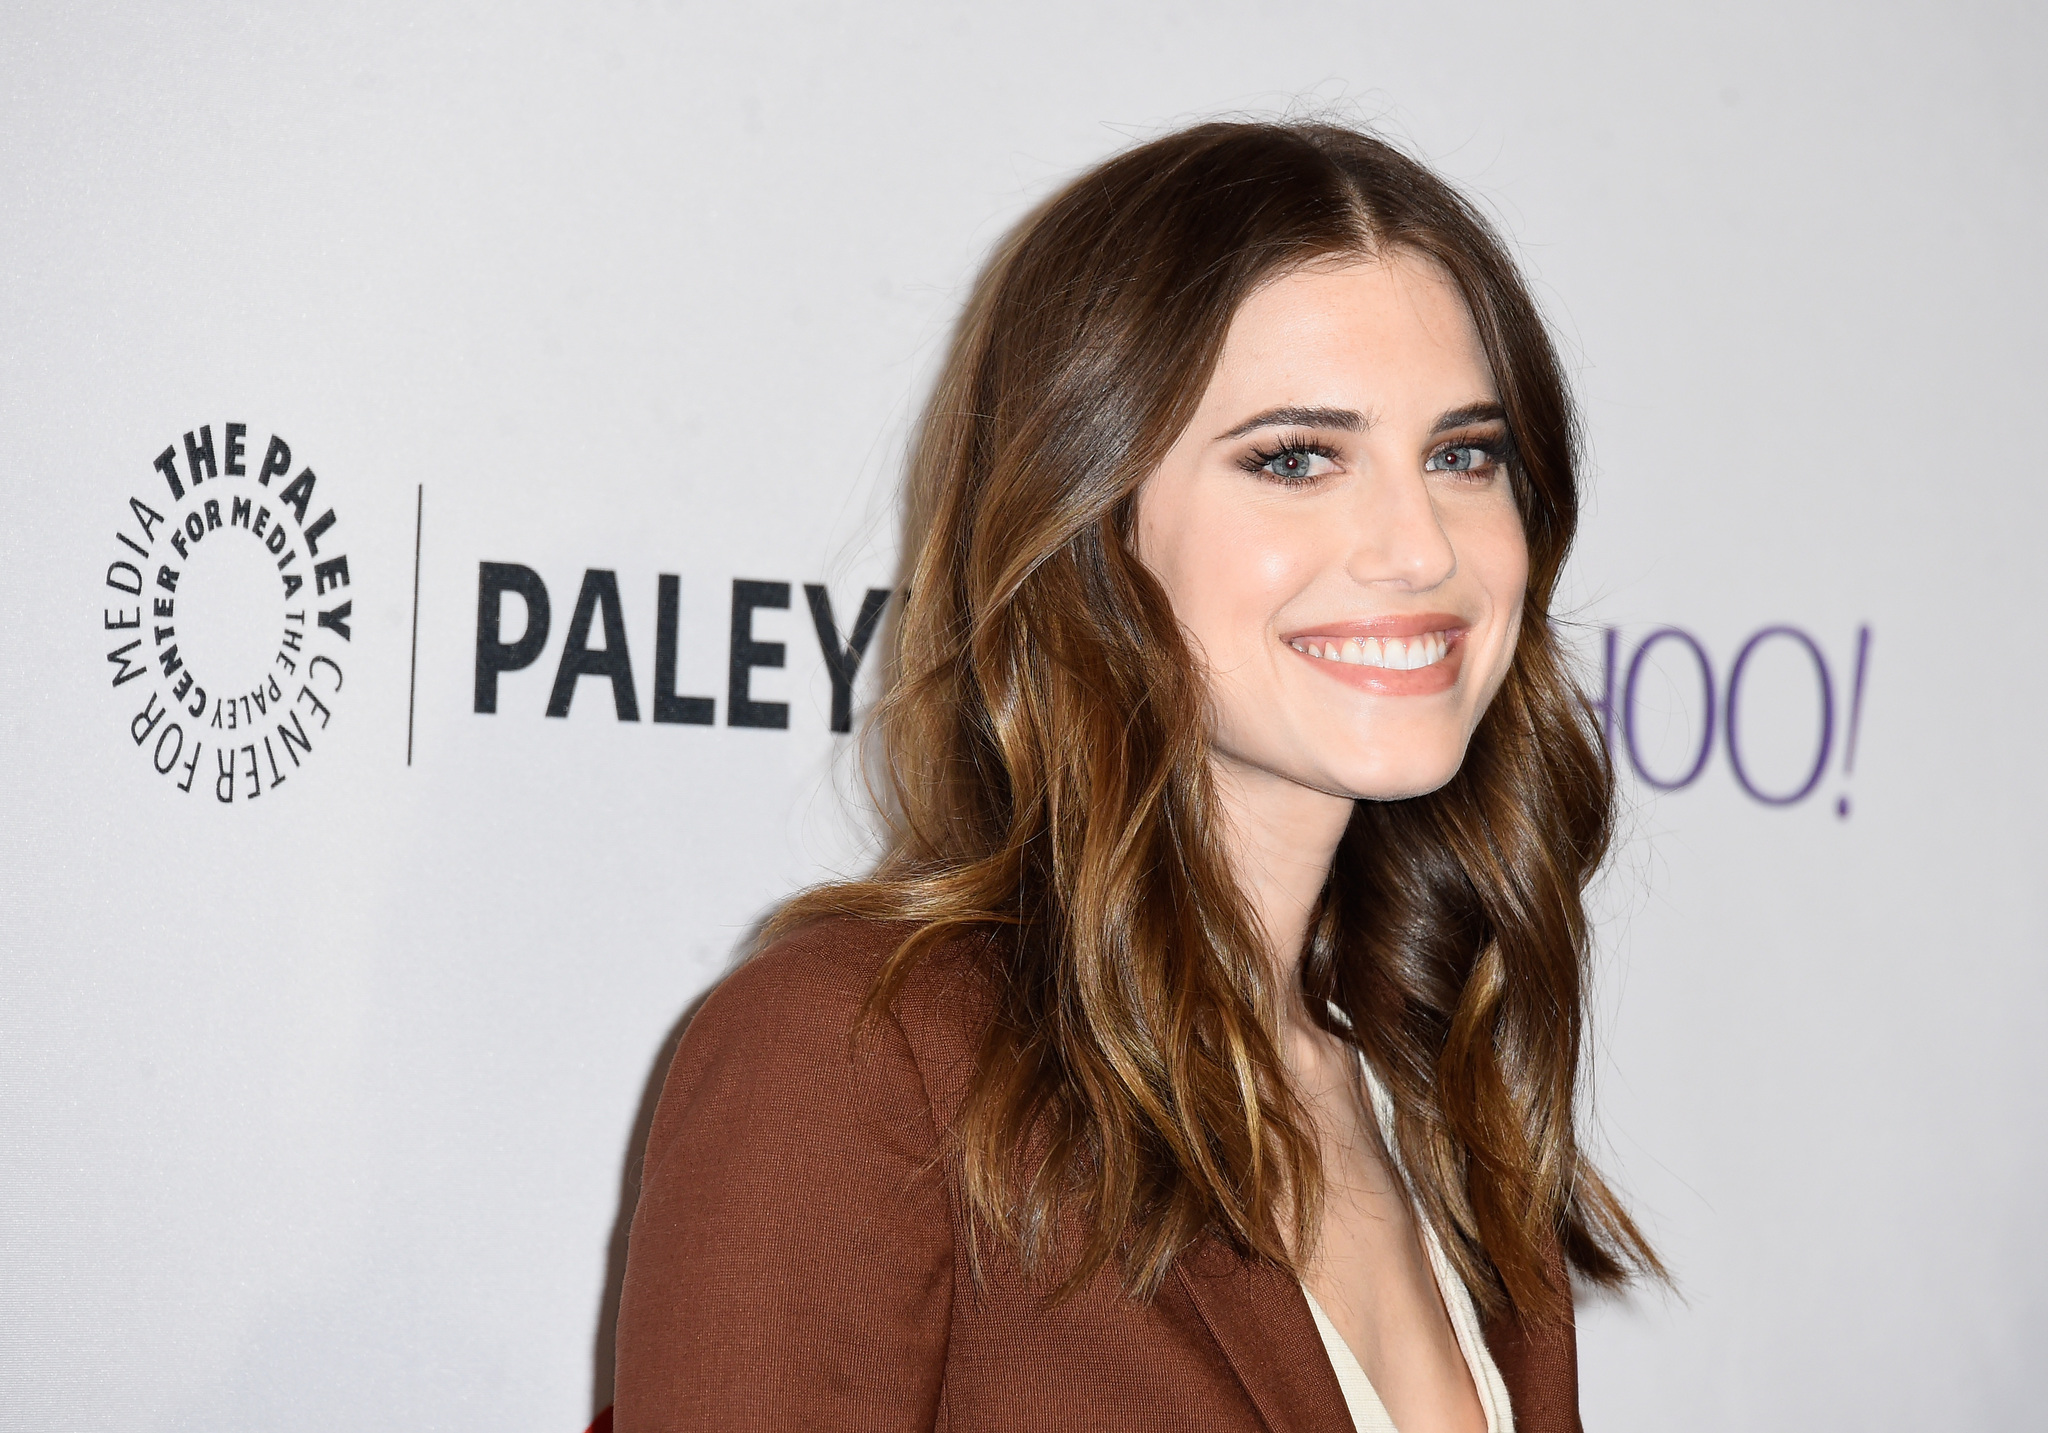 Allison Williams at an event for Girls (2012)